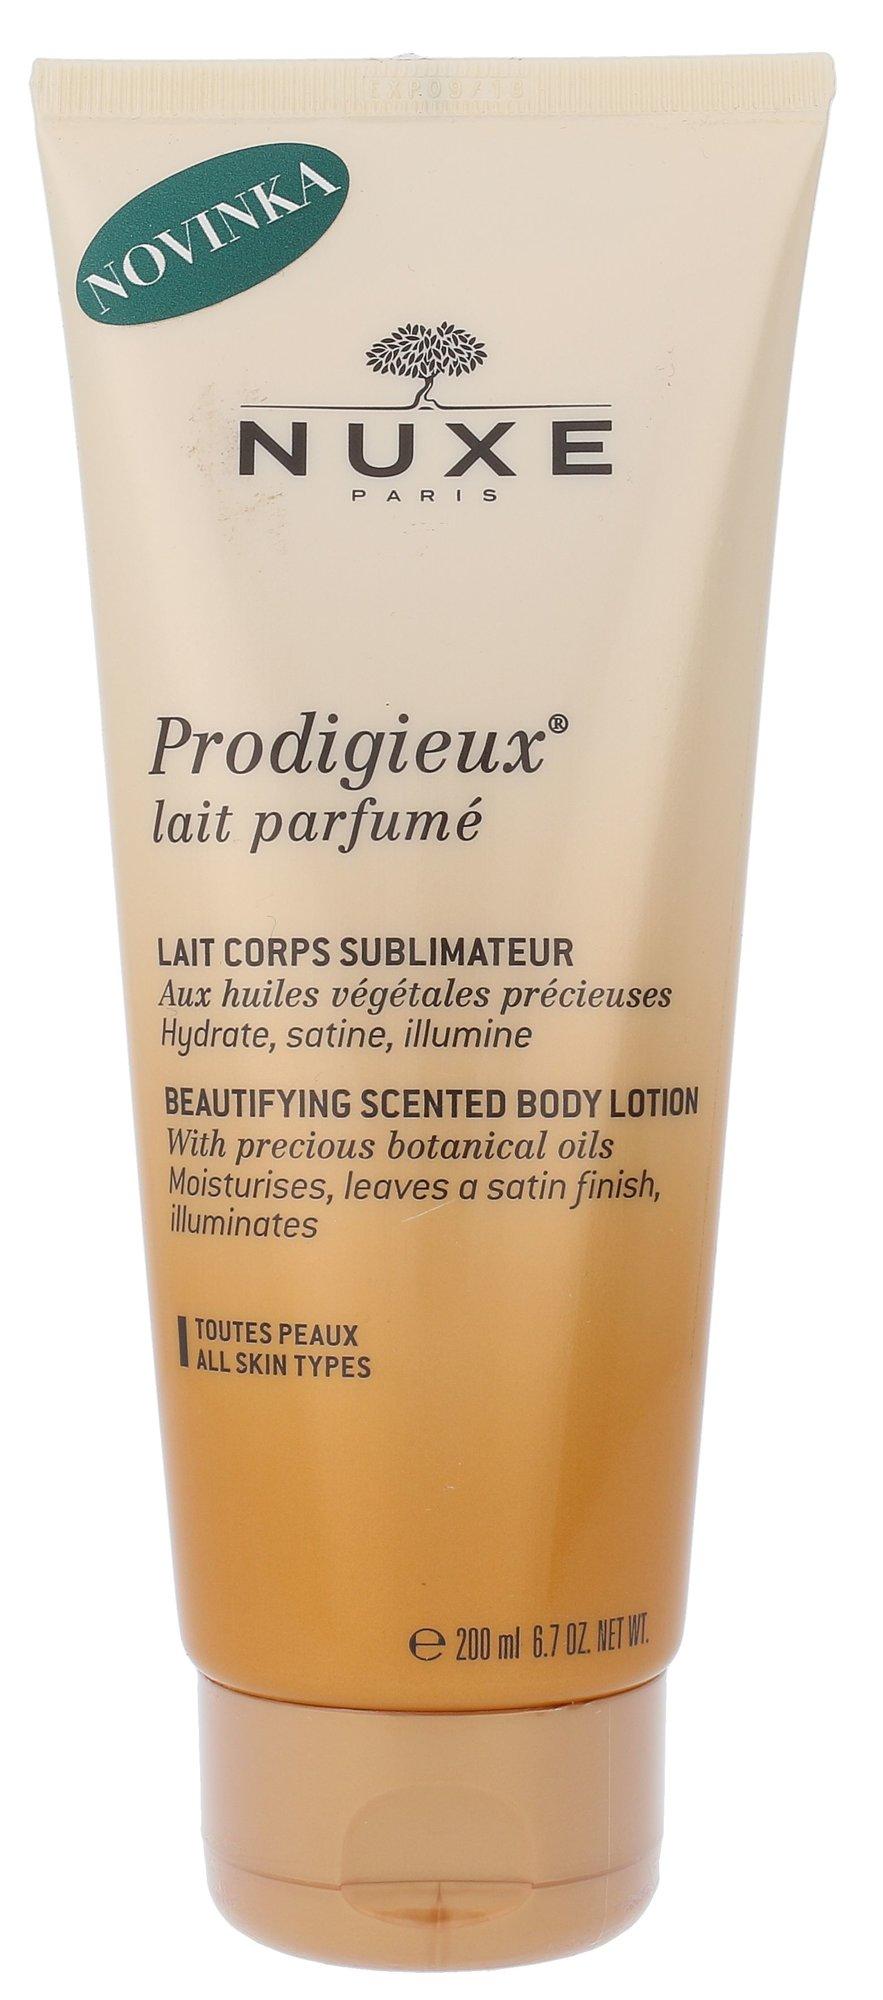 Nuxe Prodigieux Beautifying Scented Body Lotion Cosmetic 200ml